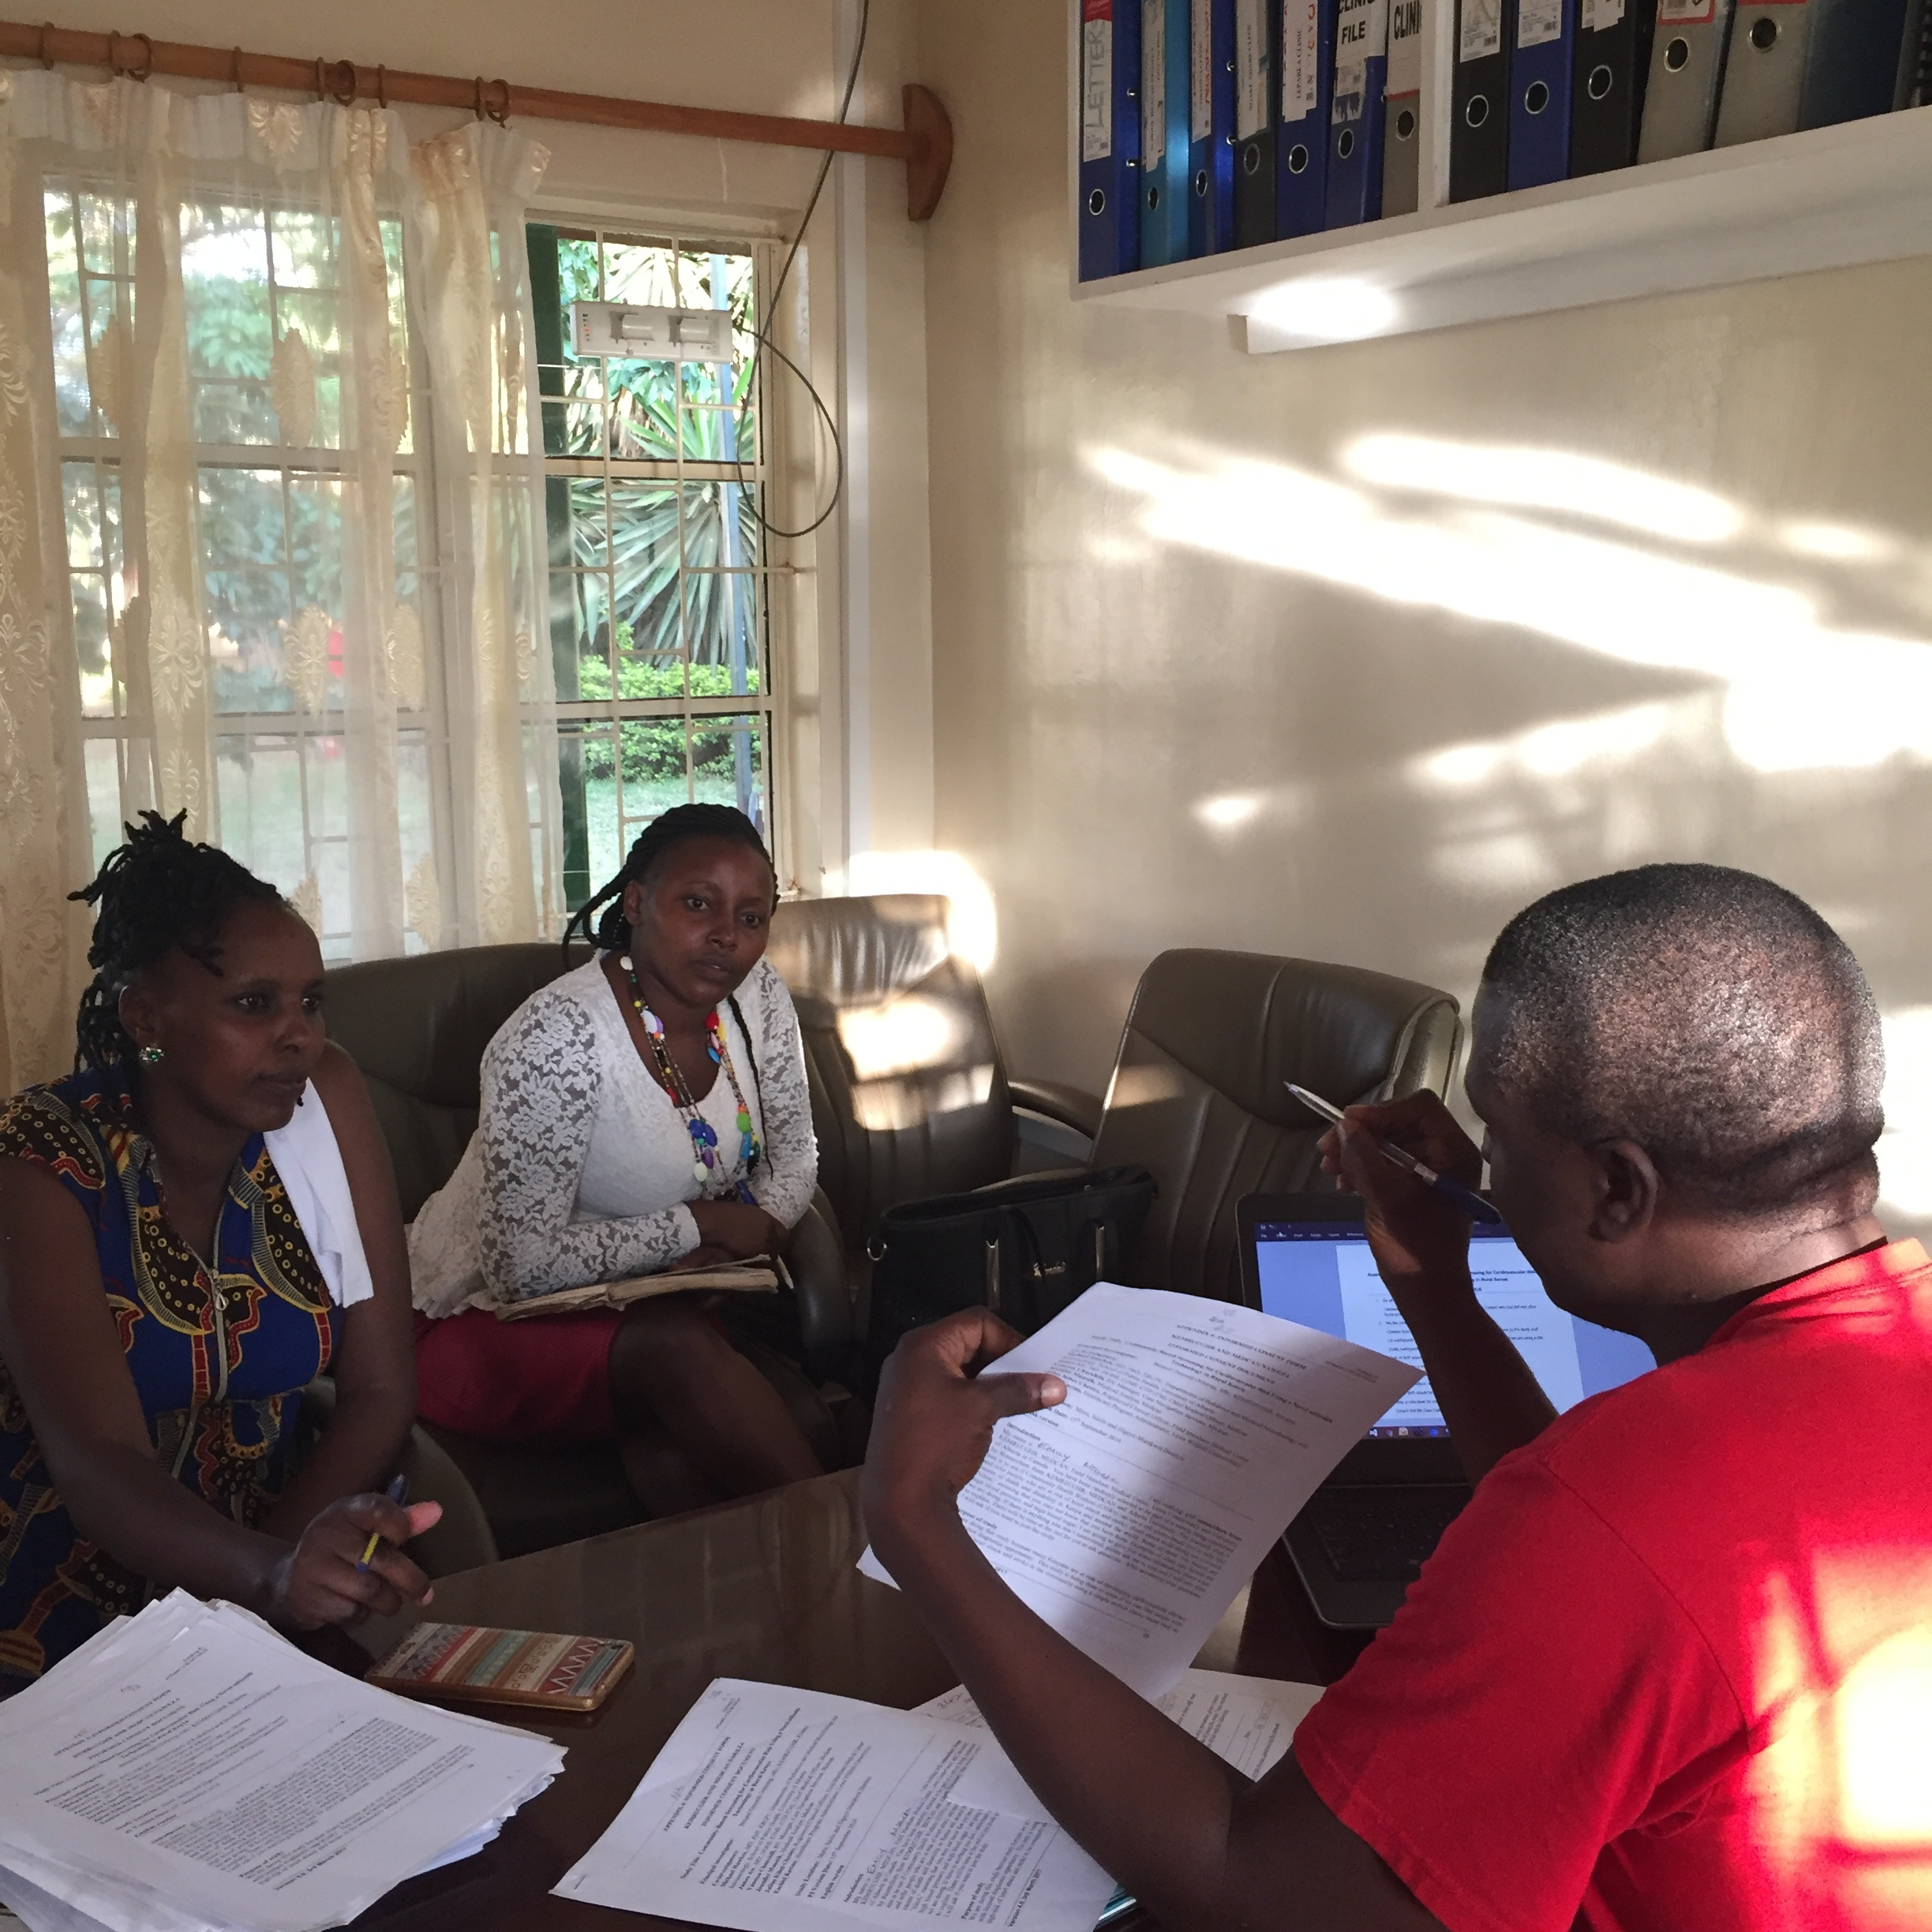 Emily, the community health worker, sits with Benard and